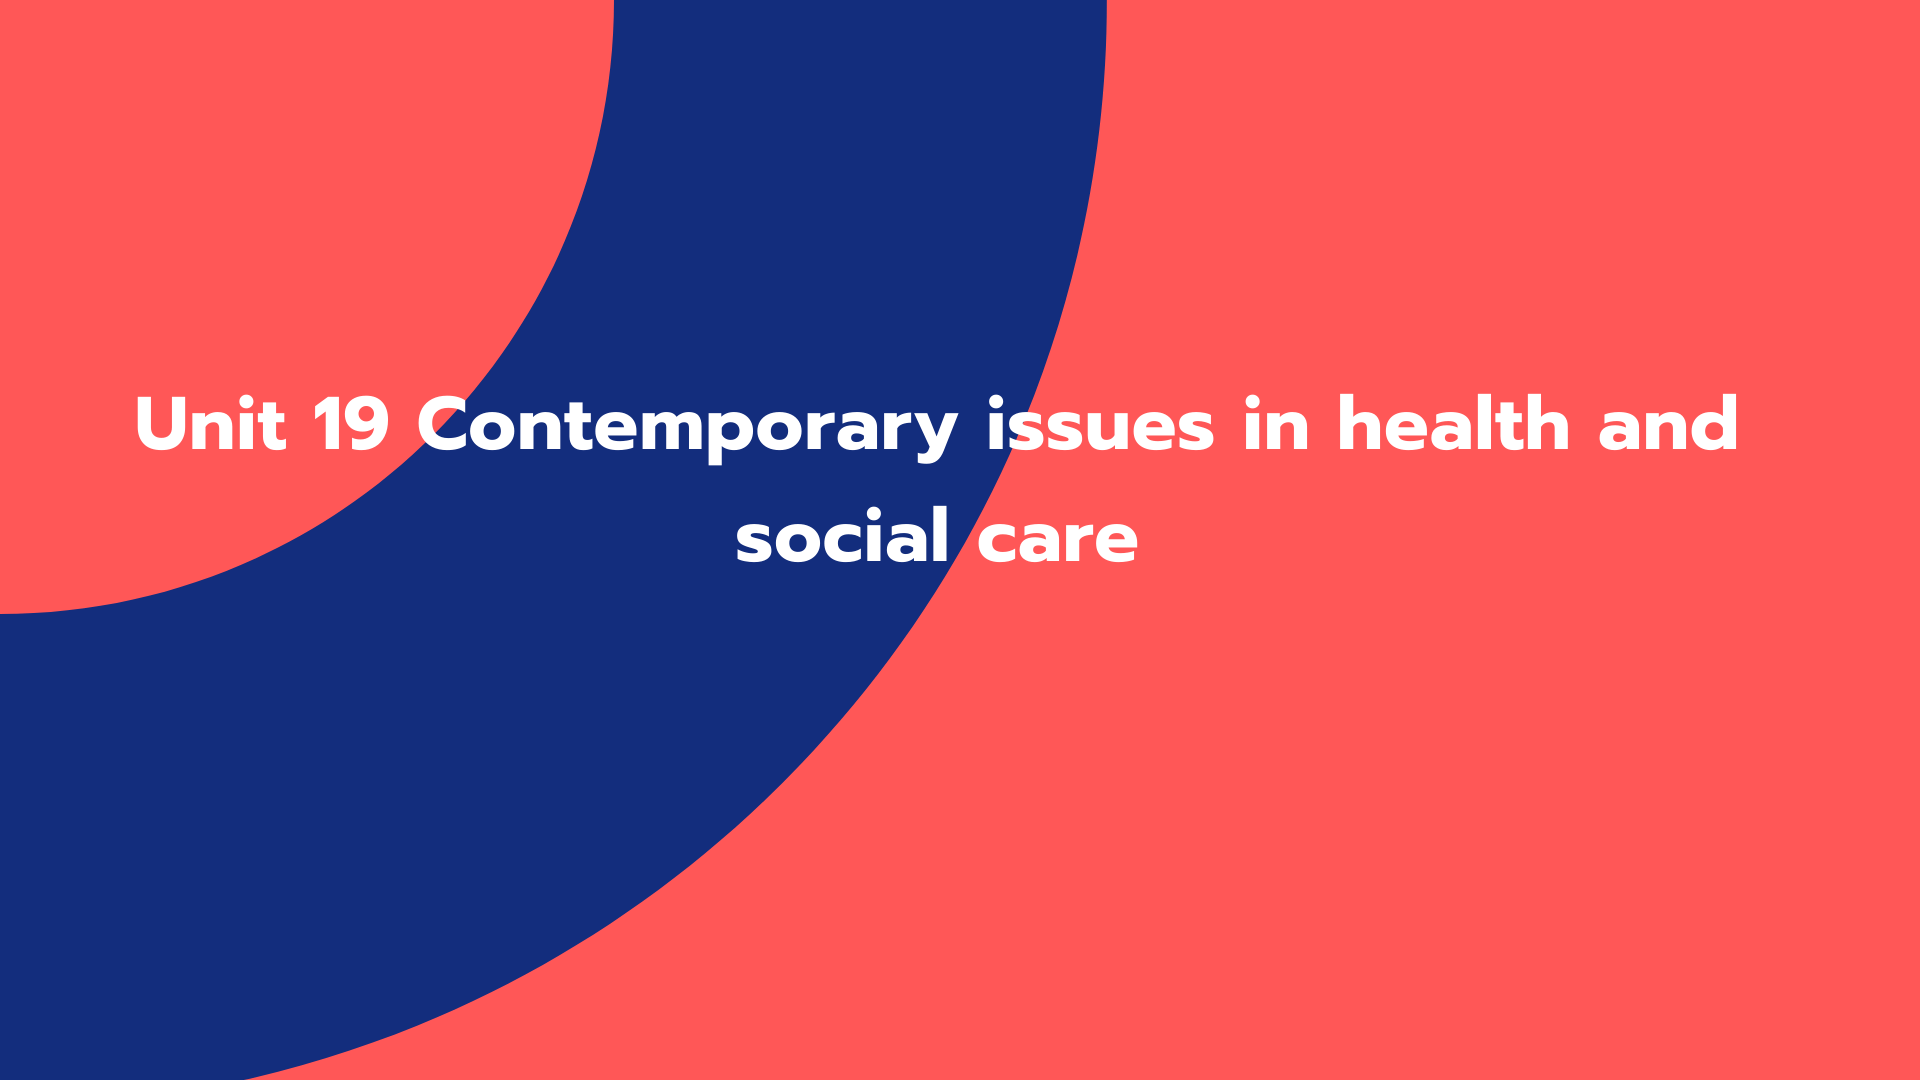 Unit 19 Contemporary issues in health and social care